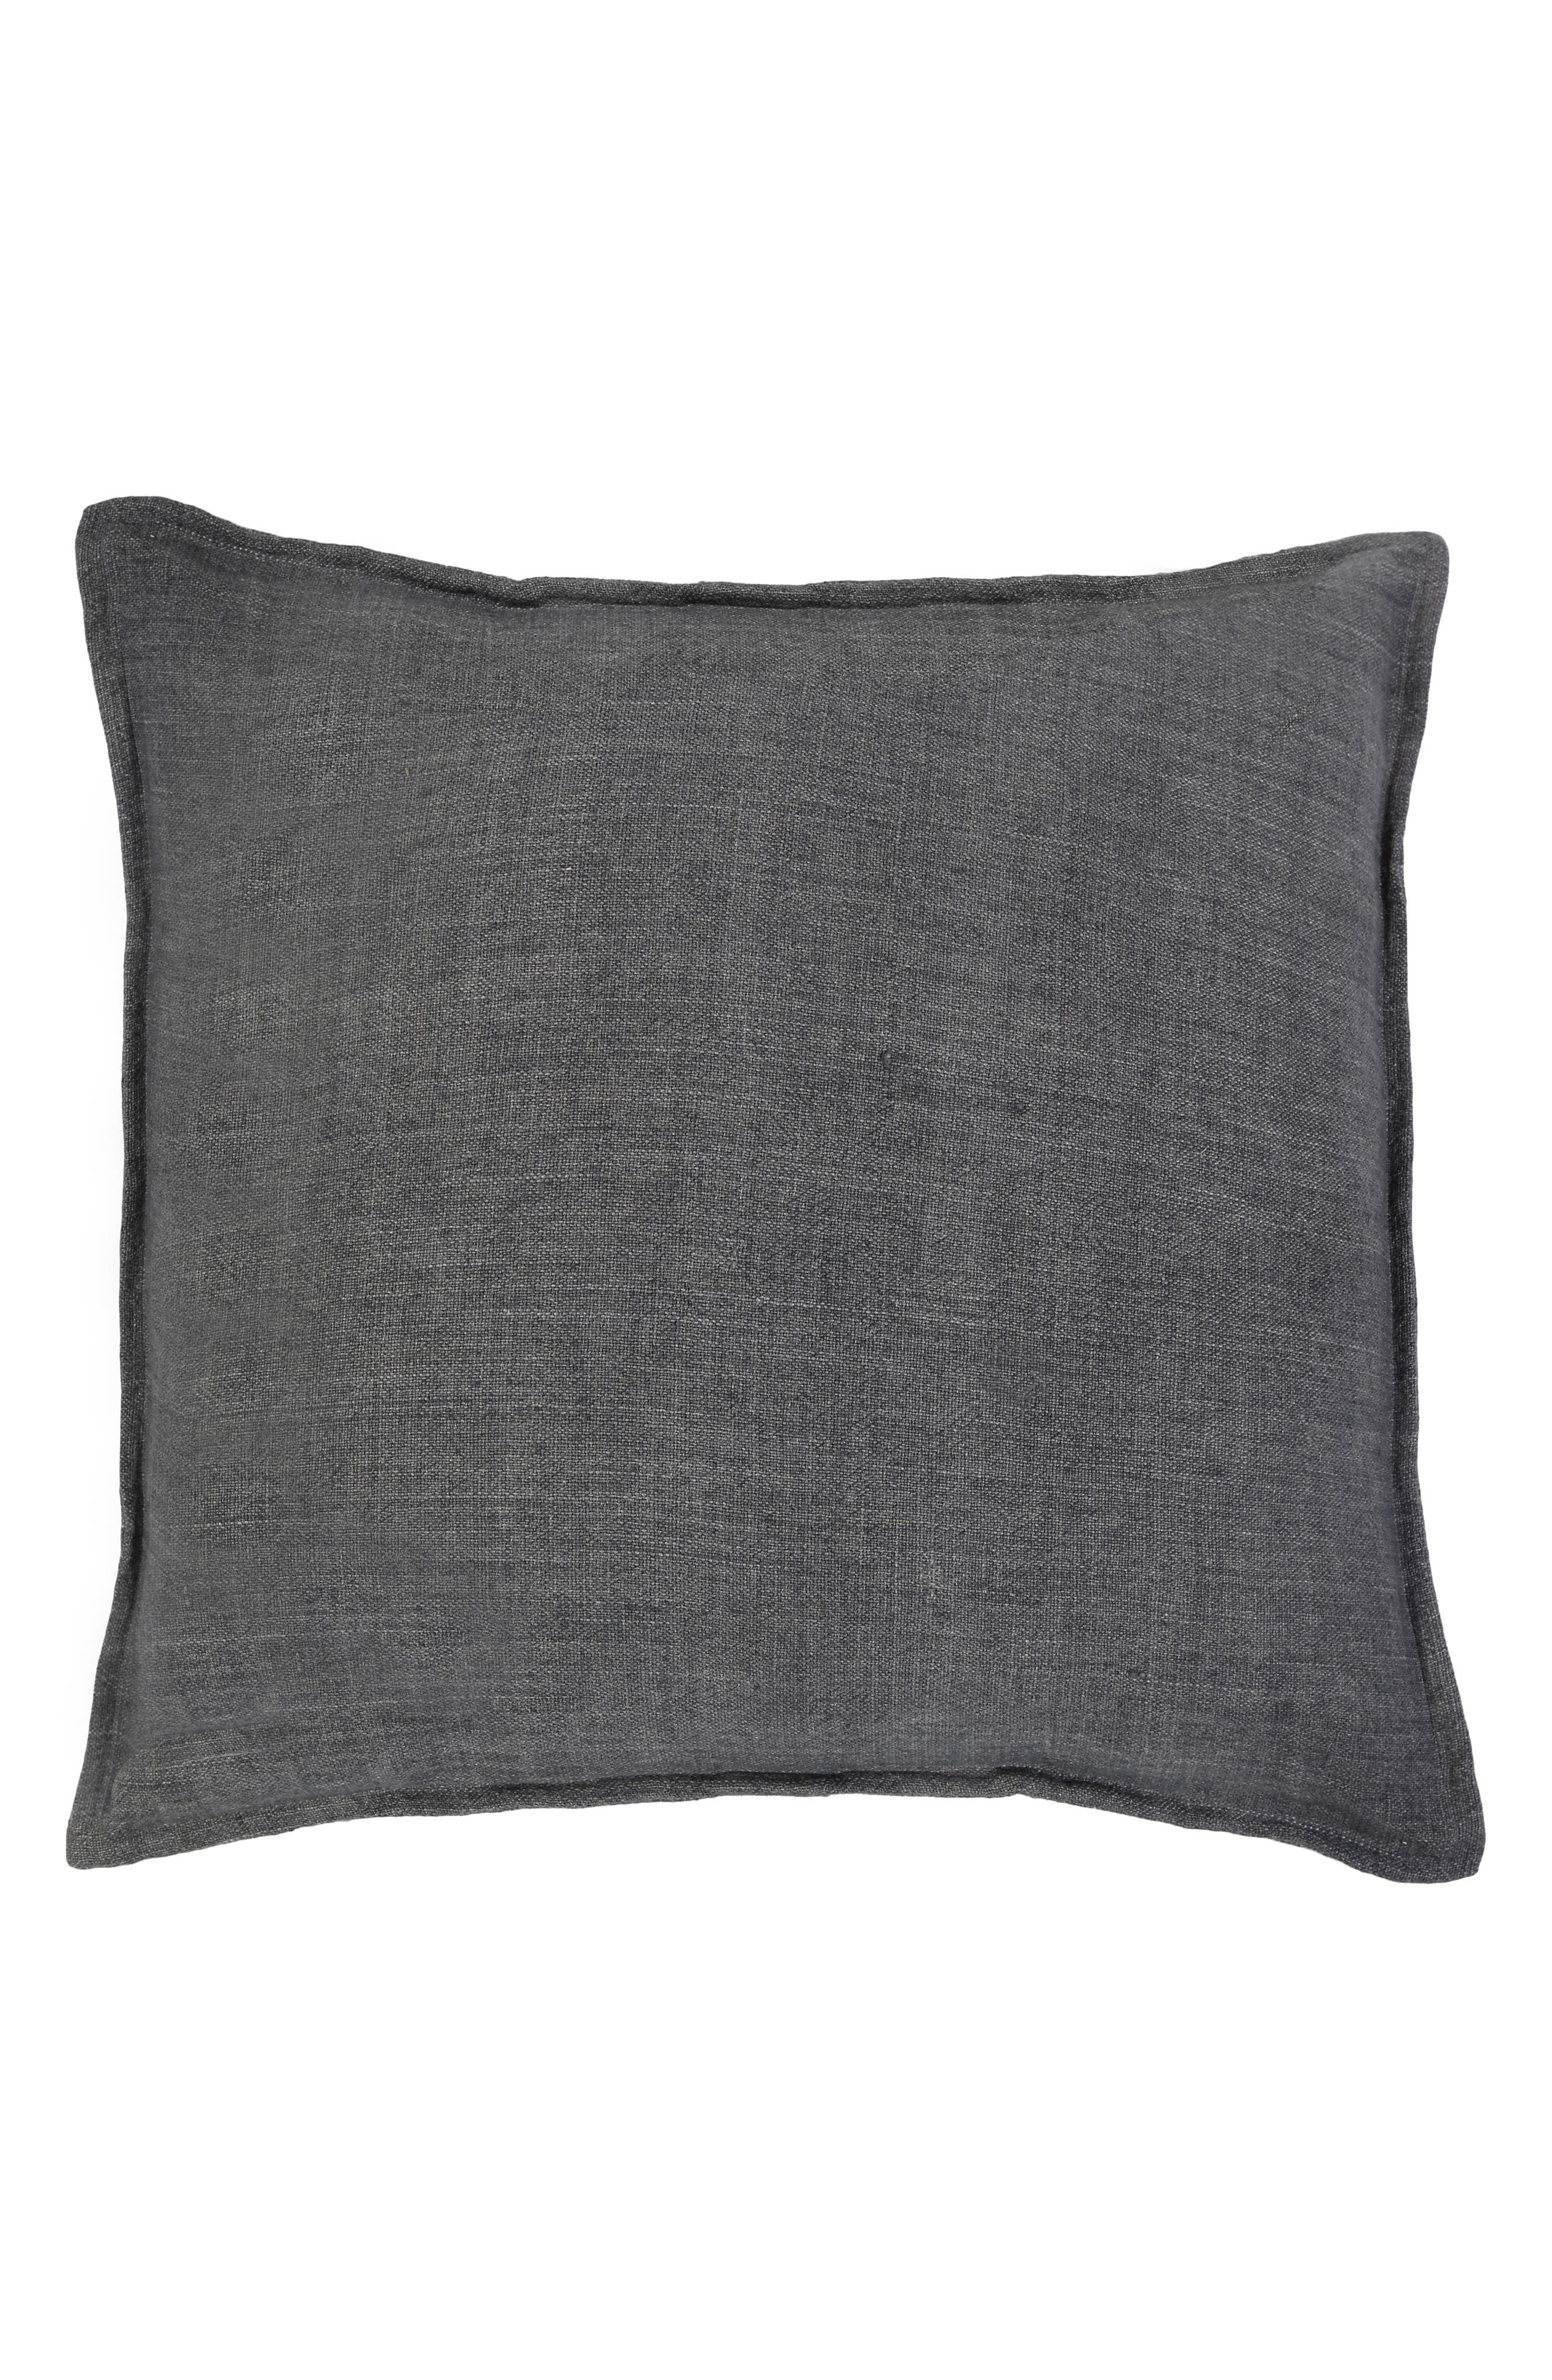 POM POM AT HOME Montauk Large Euro Accent Pillow, Main, color, CHARCOAL